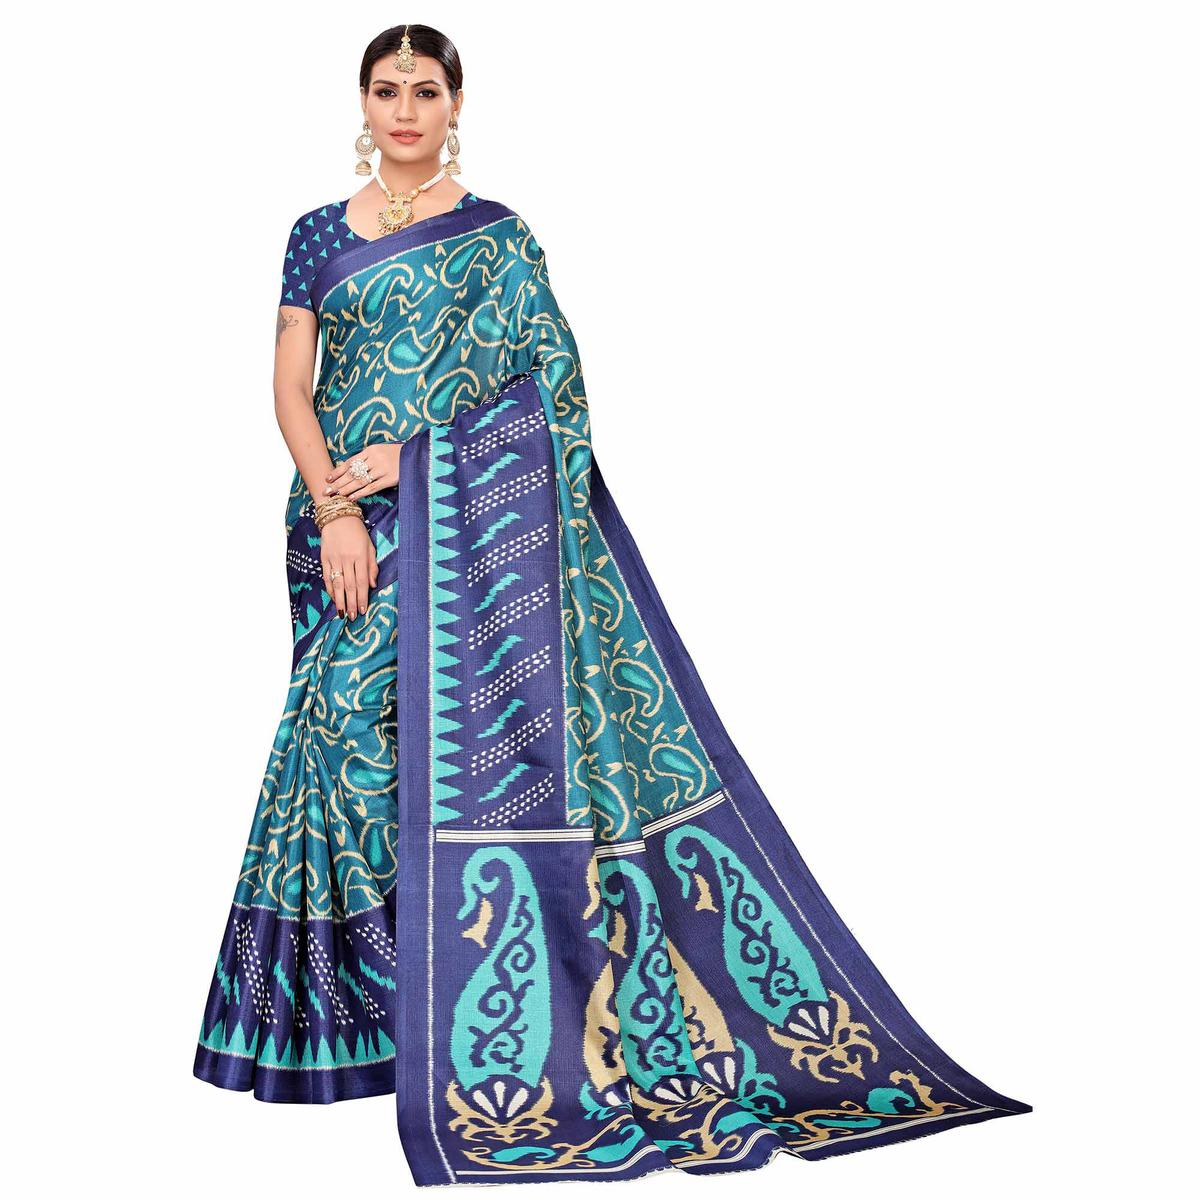 Innovative Turquoise Green Colored Casual Printed Art Silk Saree